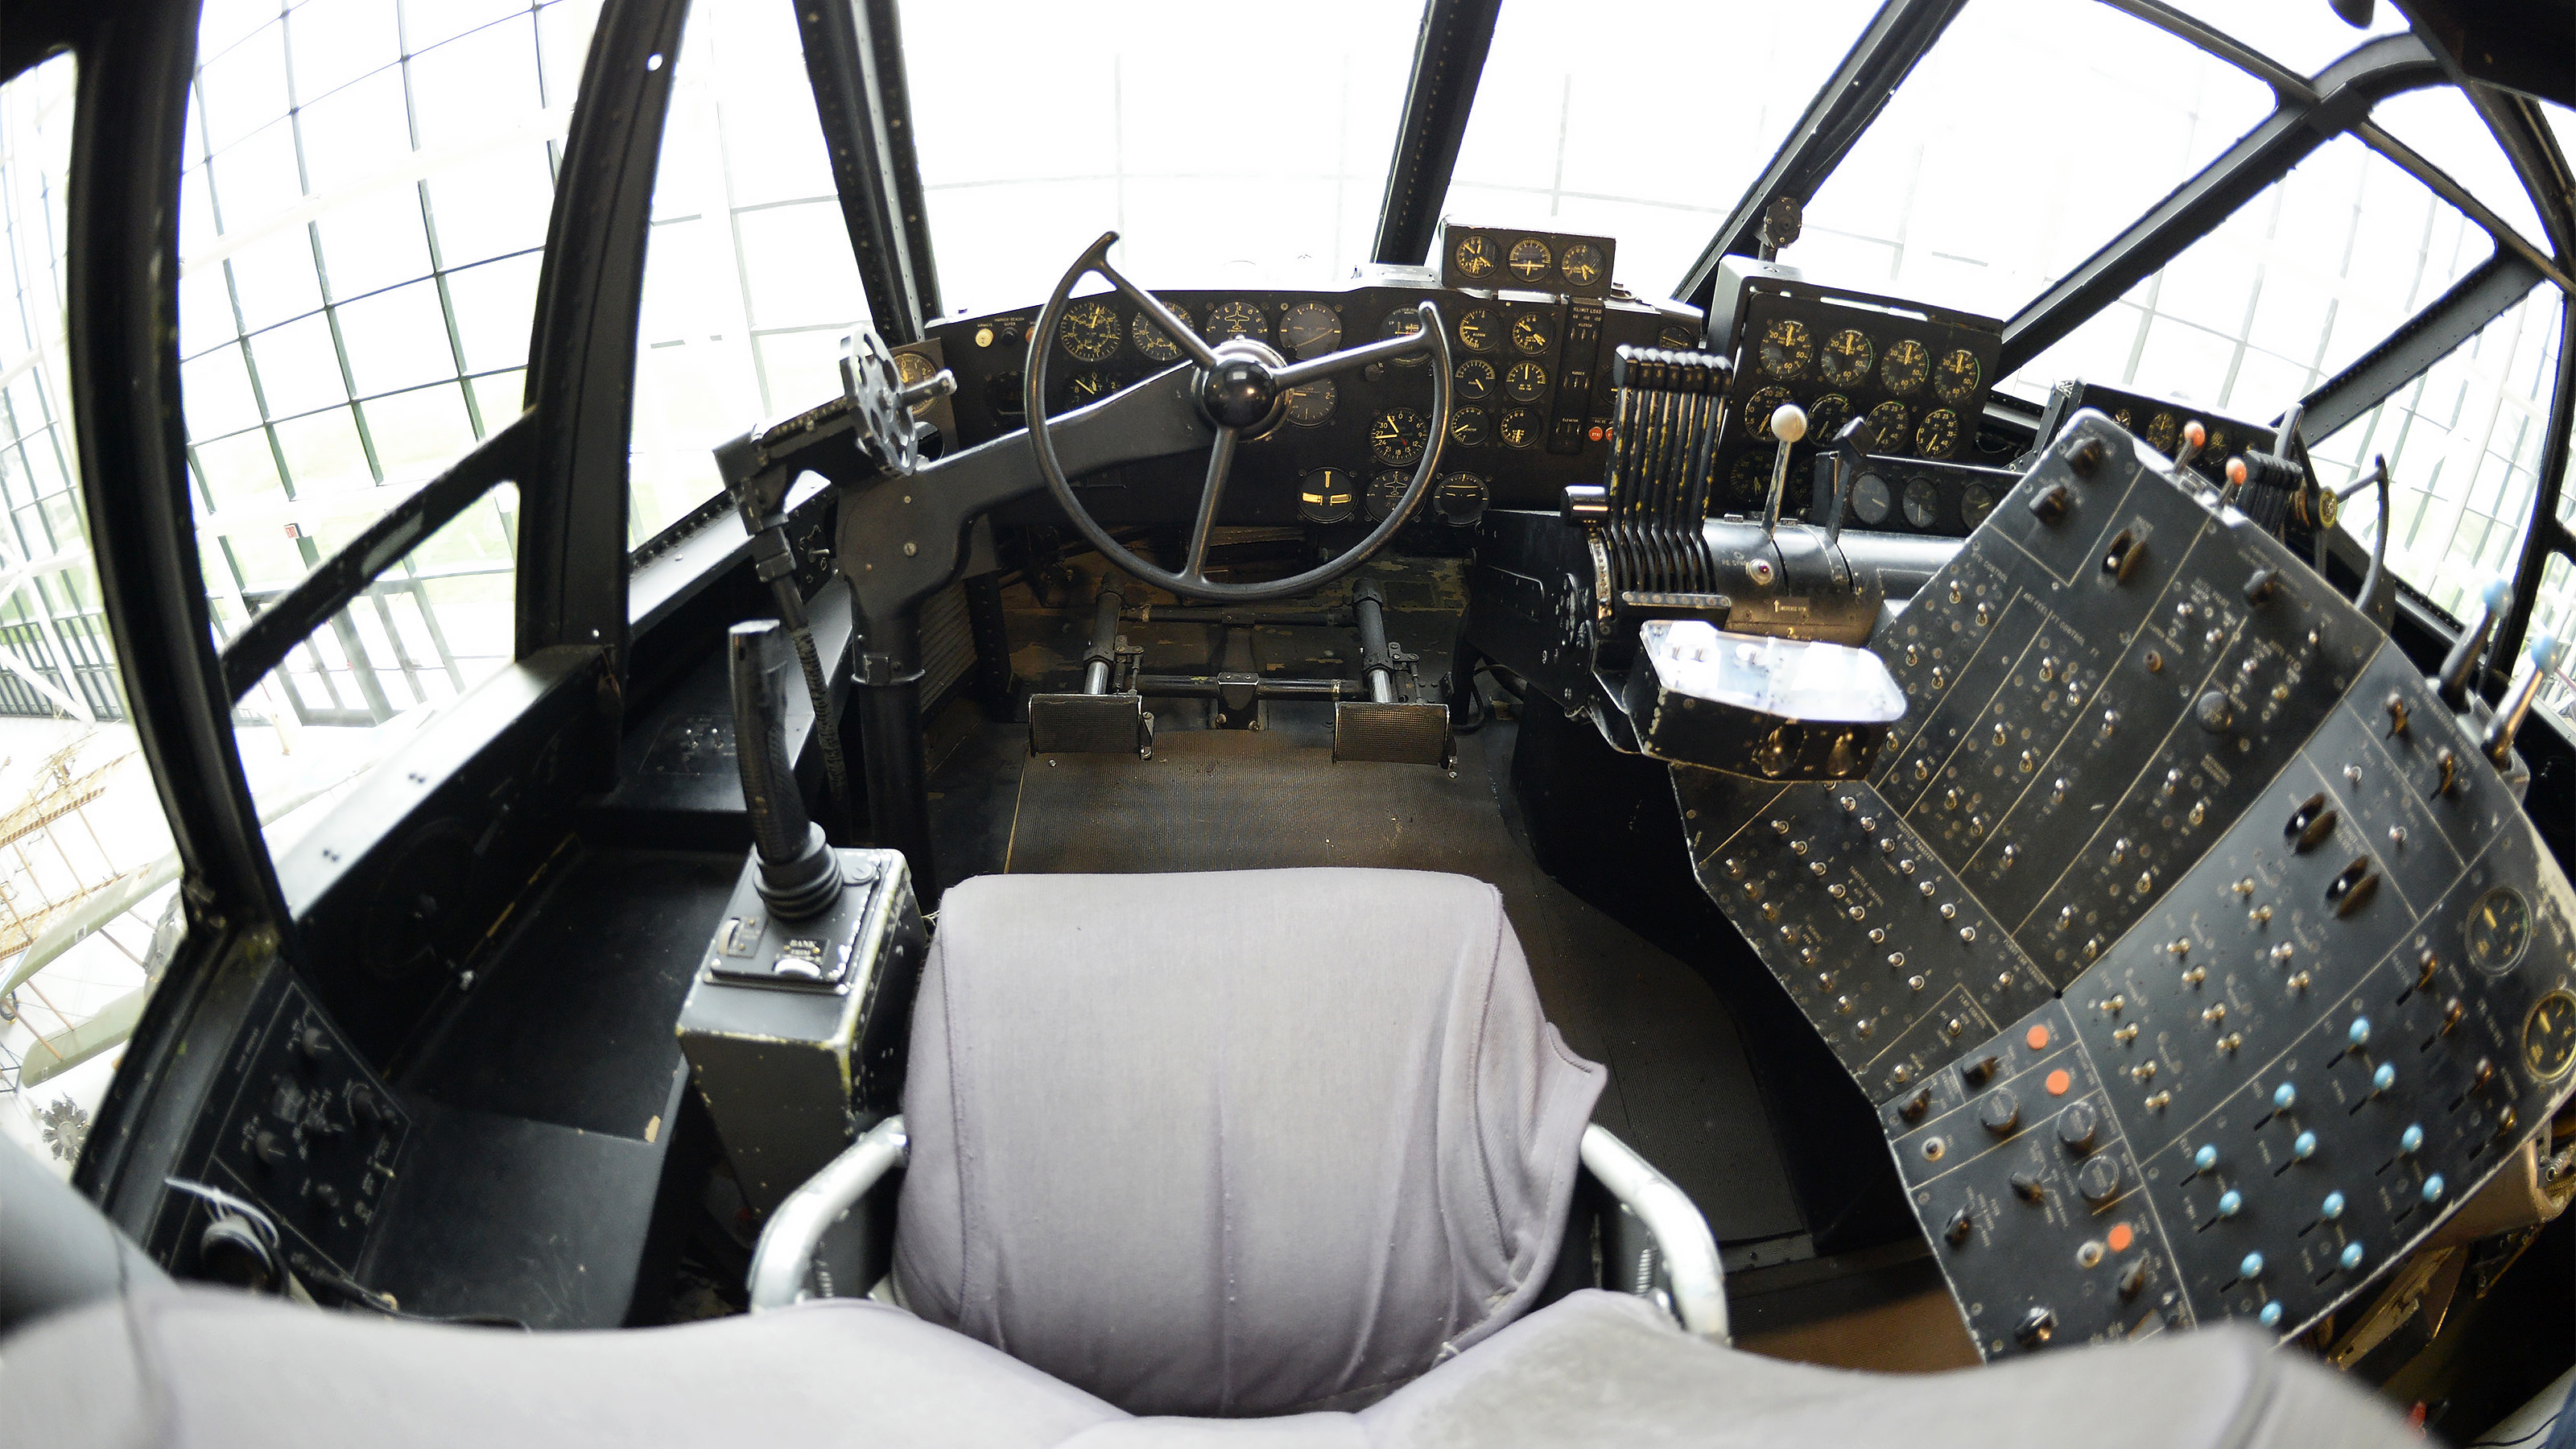 The view from Howard Hughes' H-4 Hercules cockpit is expansive, with four large windows, eight power levers, and hundreds of switches, dials, and gauges. Photo by David Tulis.